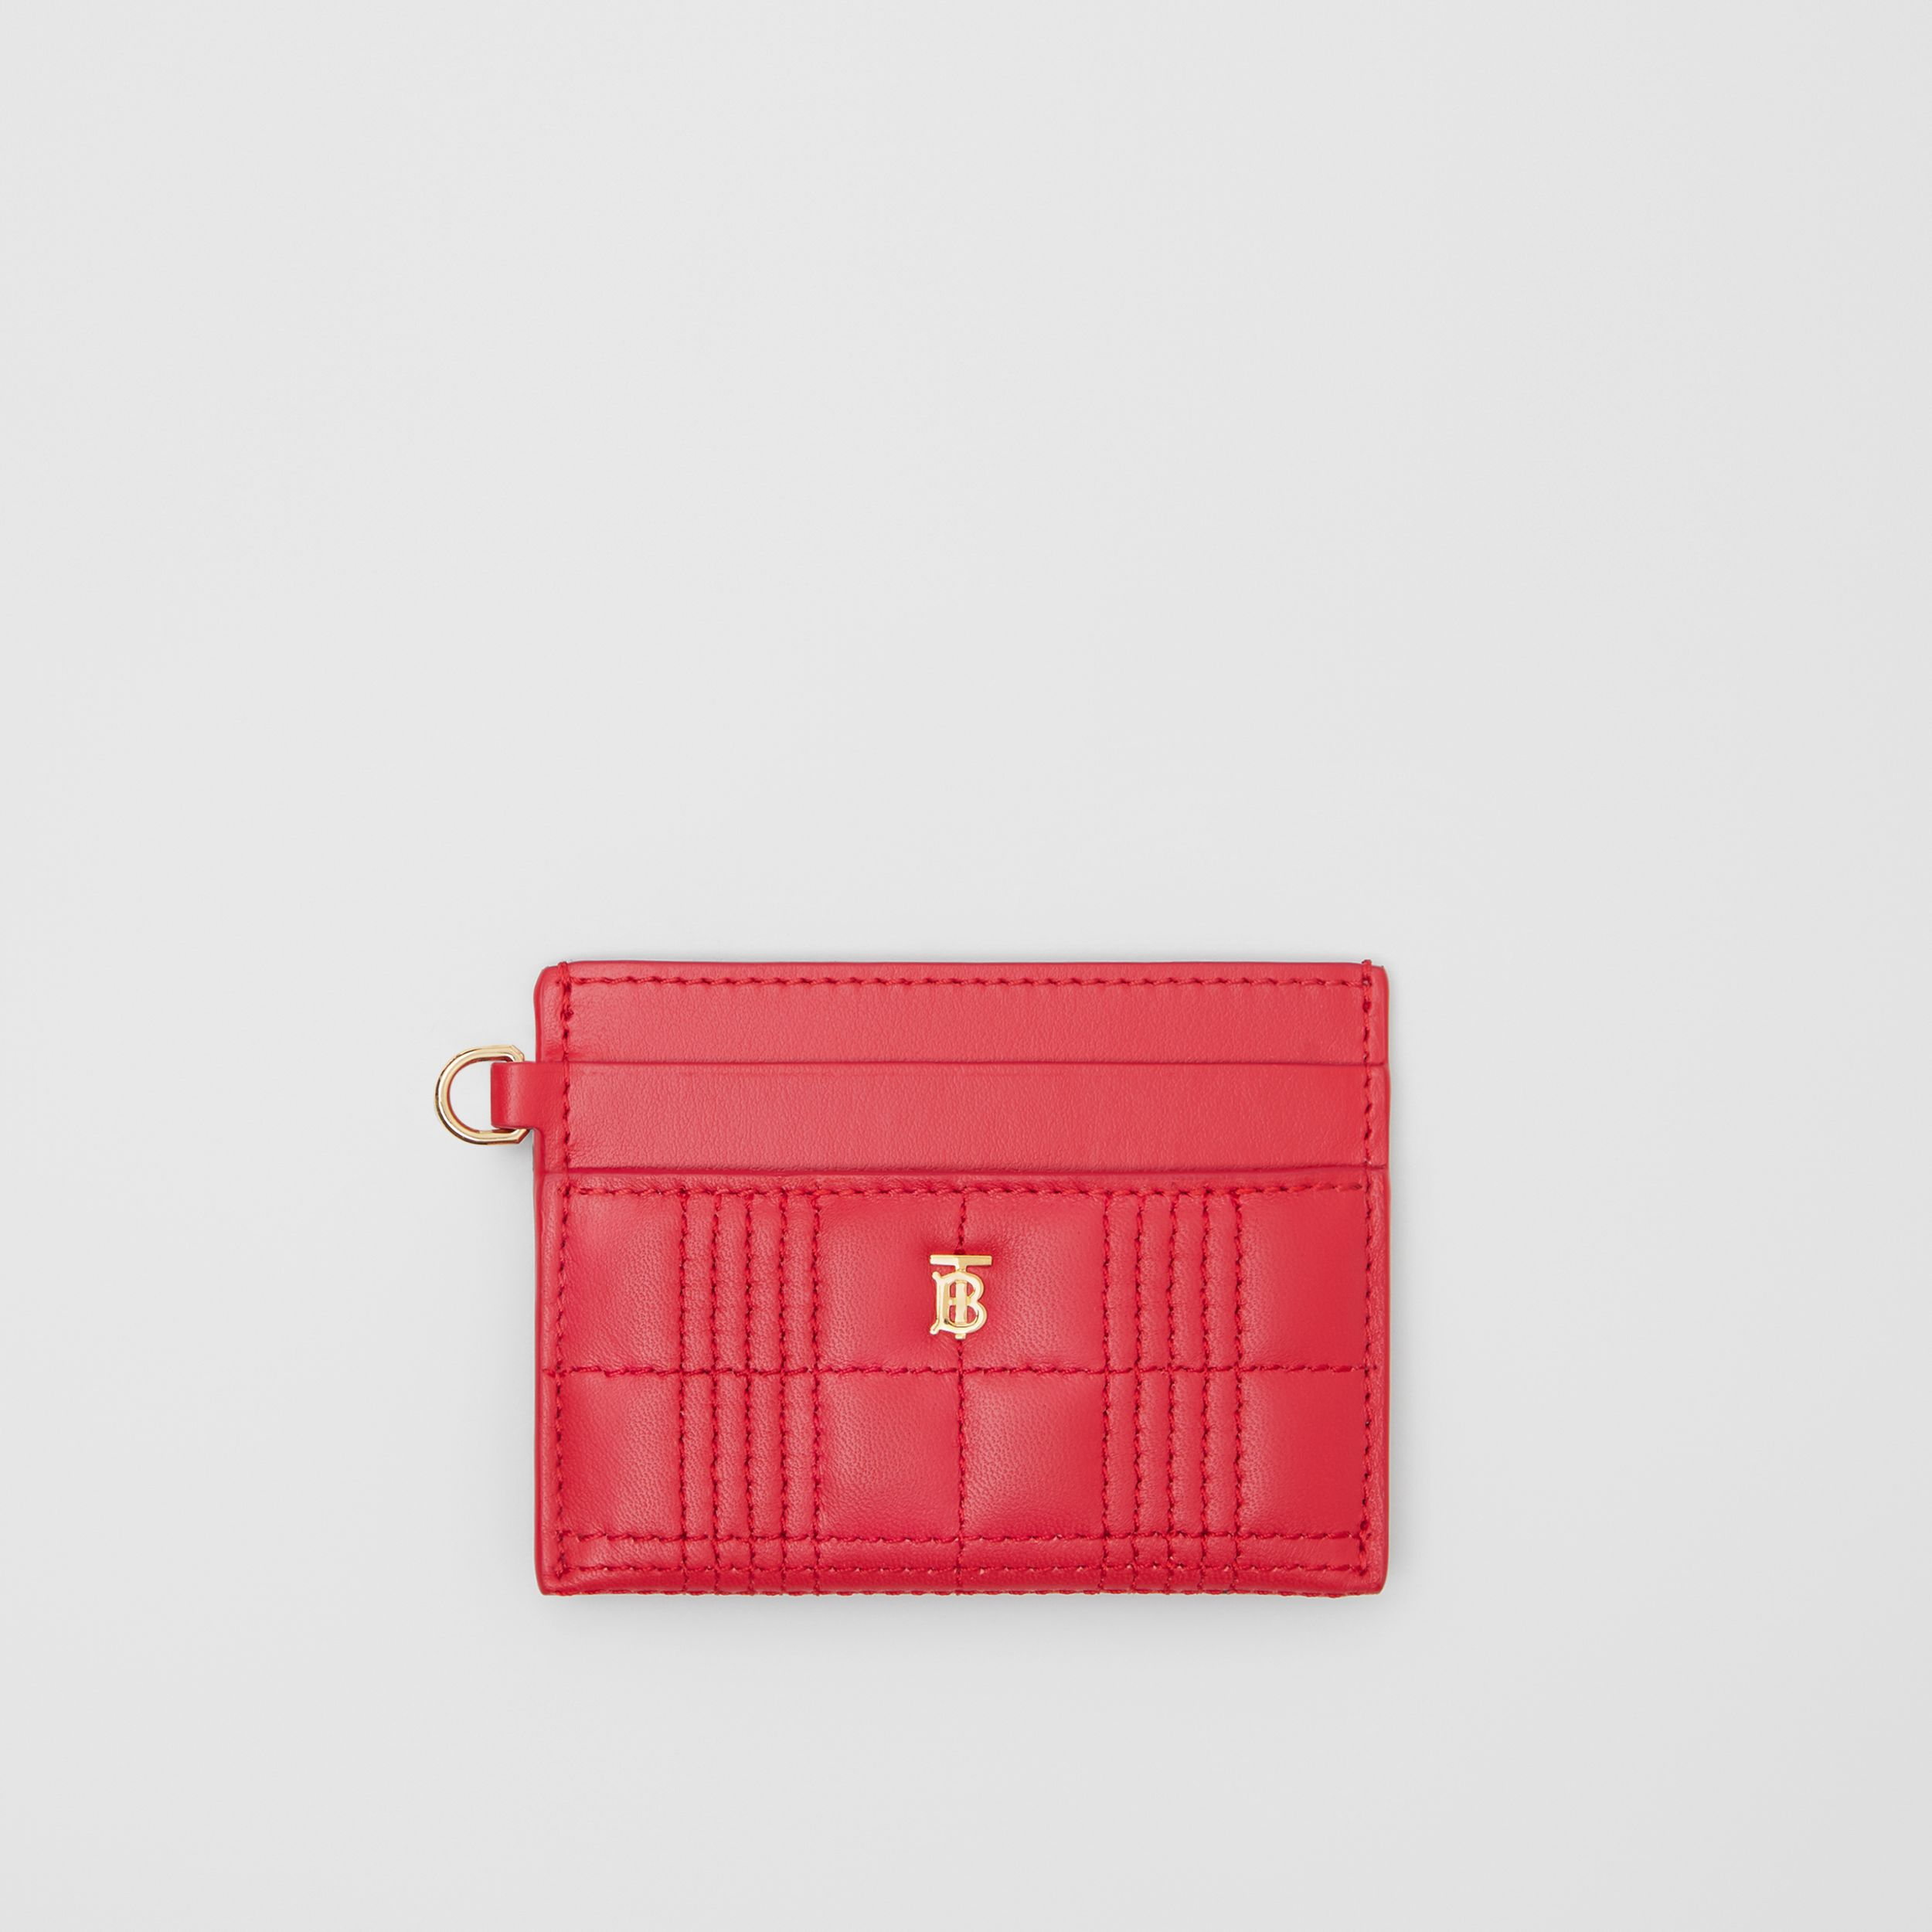 Monogram Motif Quilted Lambskin Card Case in Bright Red - Women | Burberry Hong Kong S.A.R. - 1